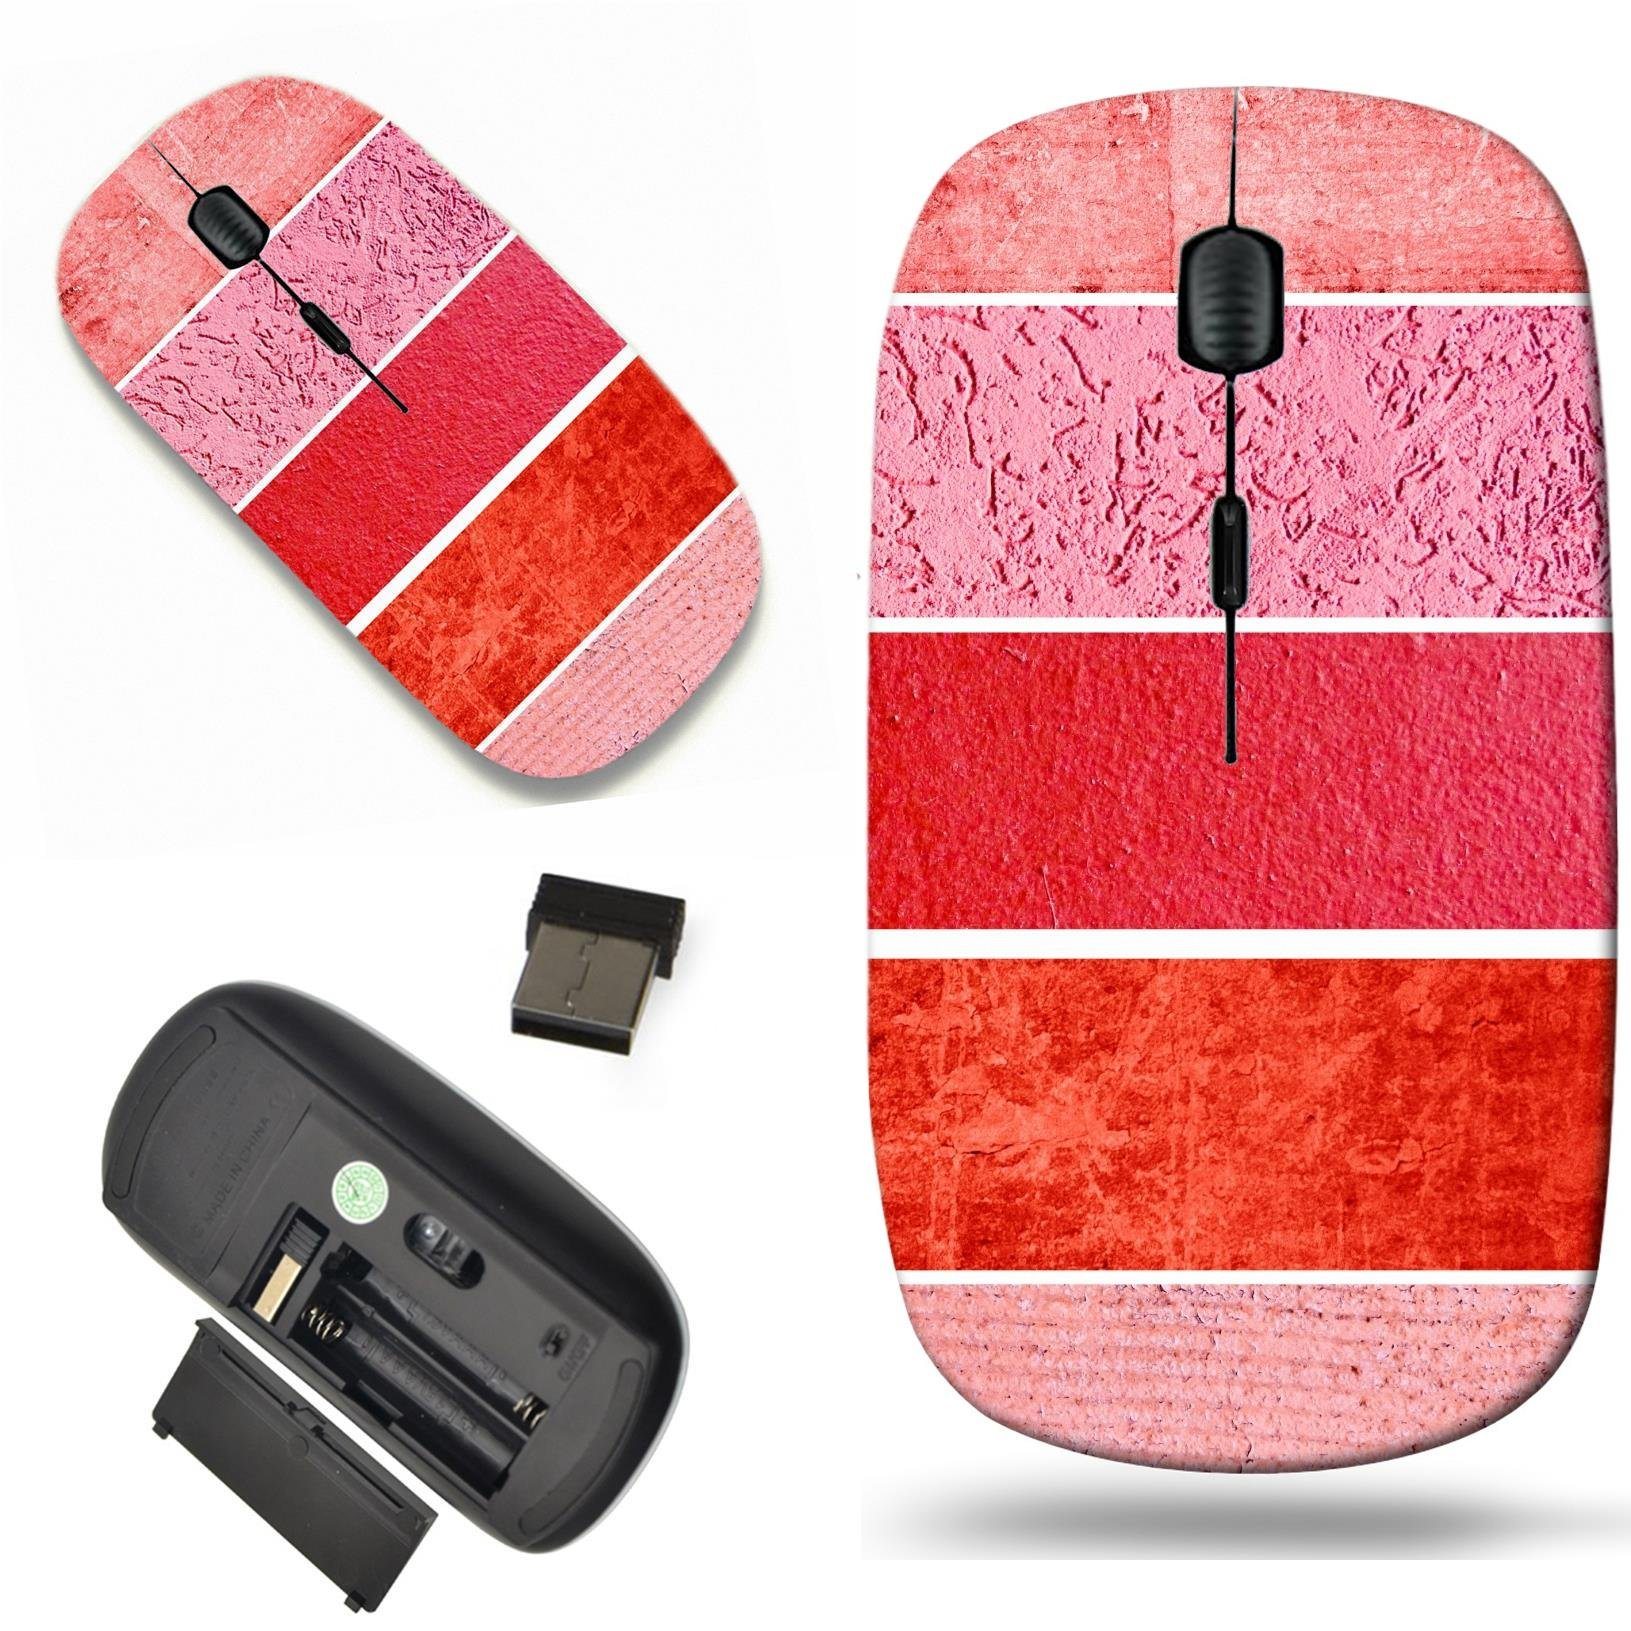 Luxlady Wireless Mouse Travel 2.4G Wireless Mice with USB Receiver, 1000 DPI for notebook, pc, laptop, macdesign IMAGE ID: 22742776 The Best of Collection old fashioned grunge background